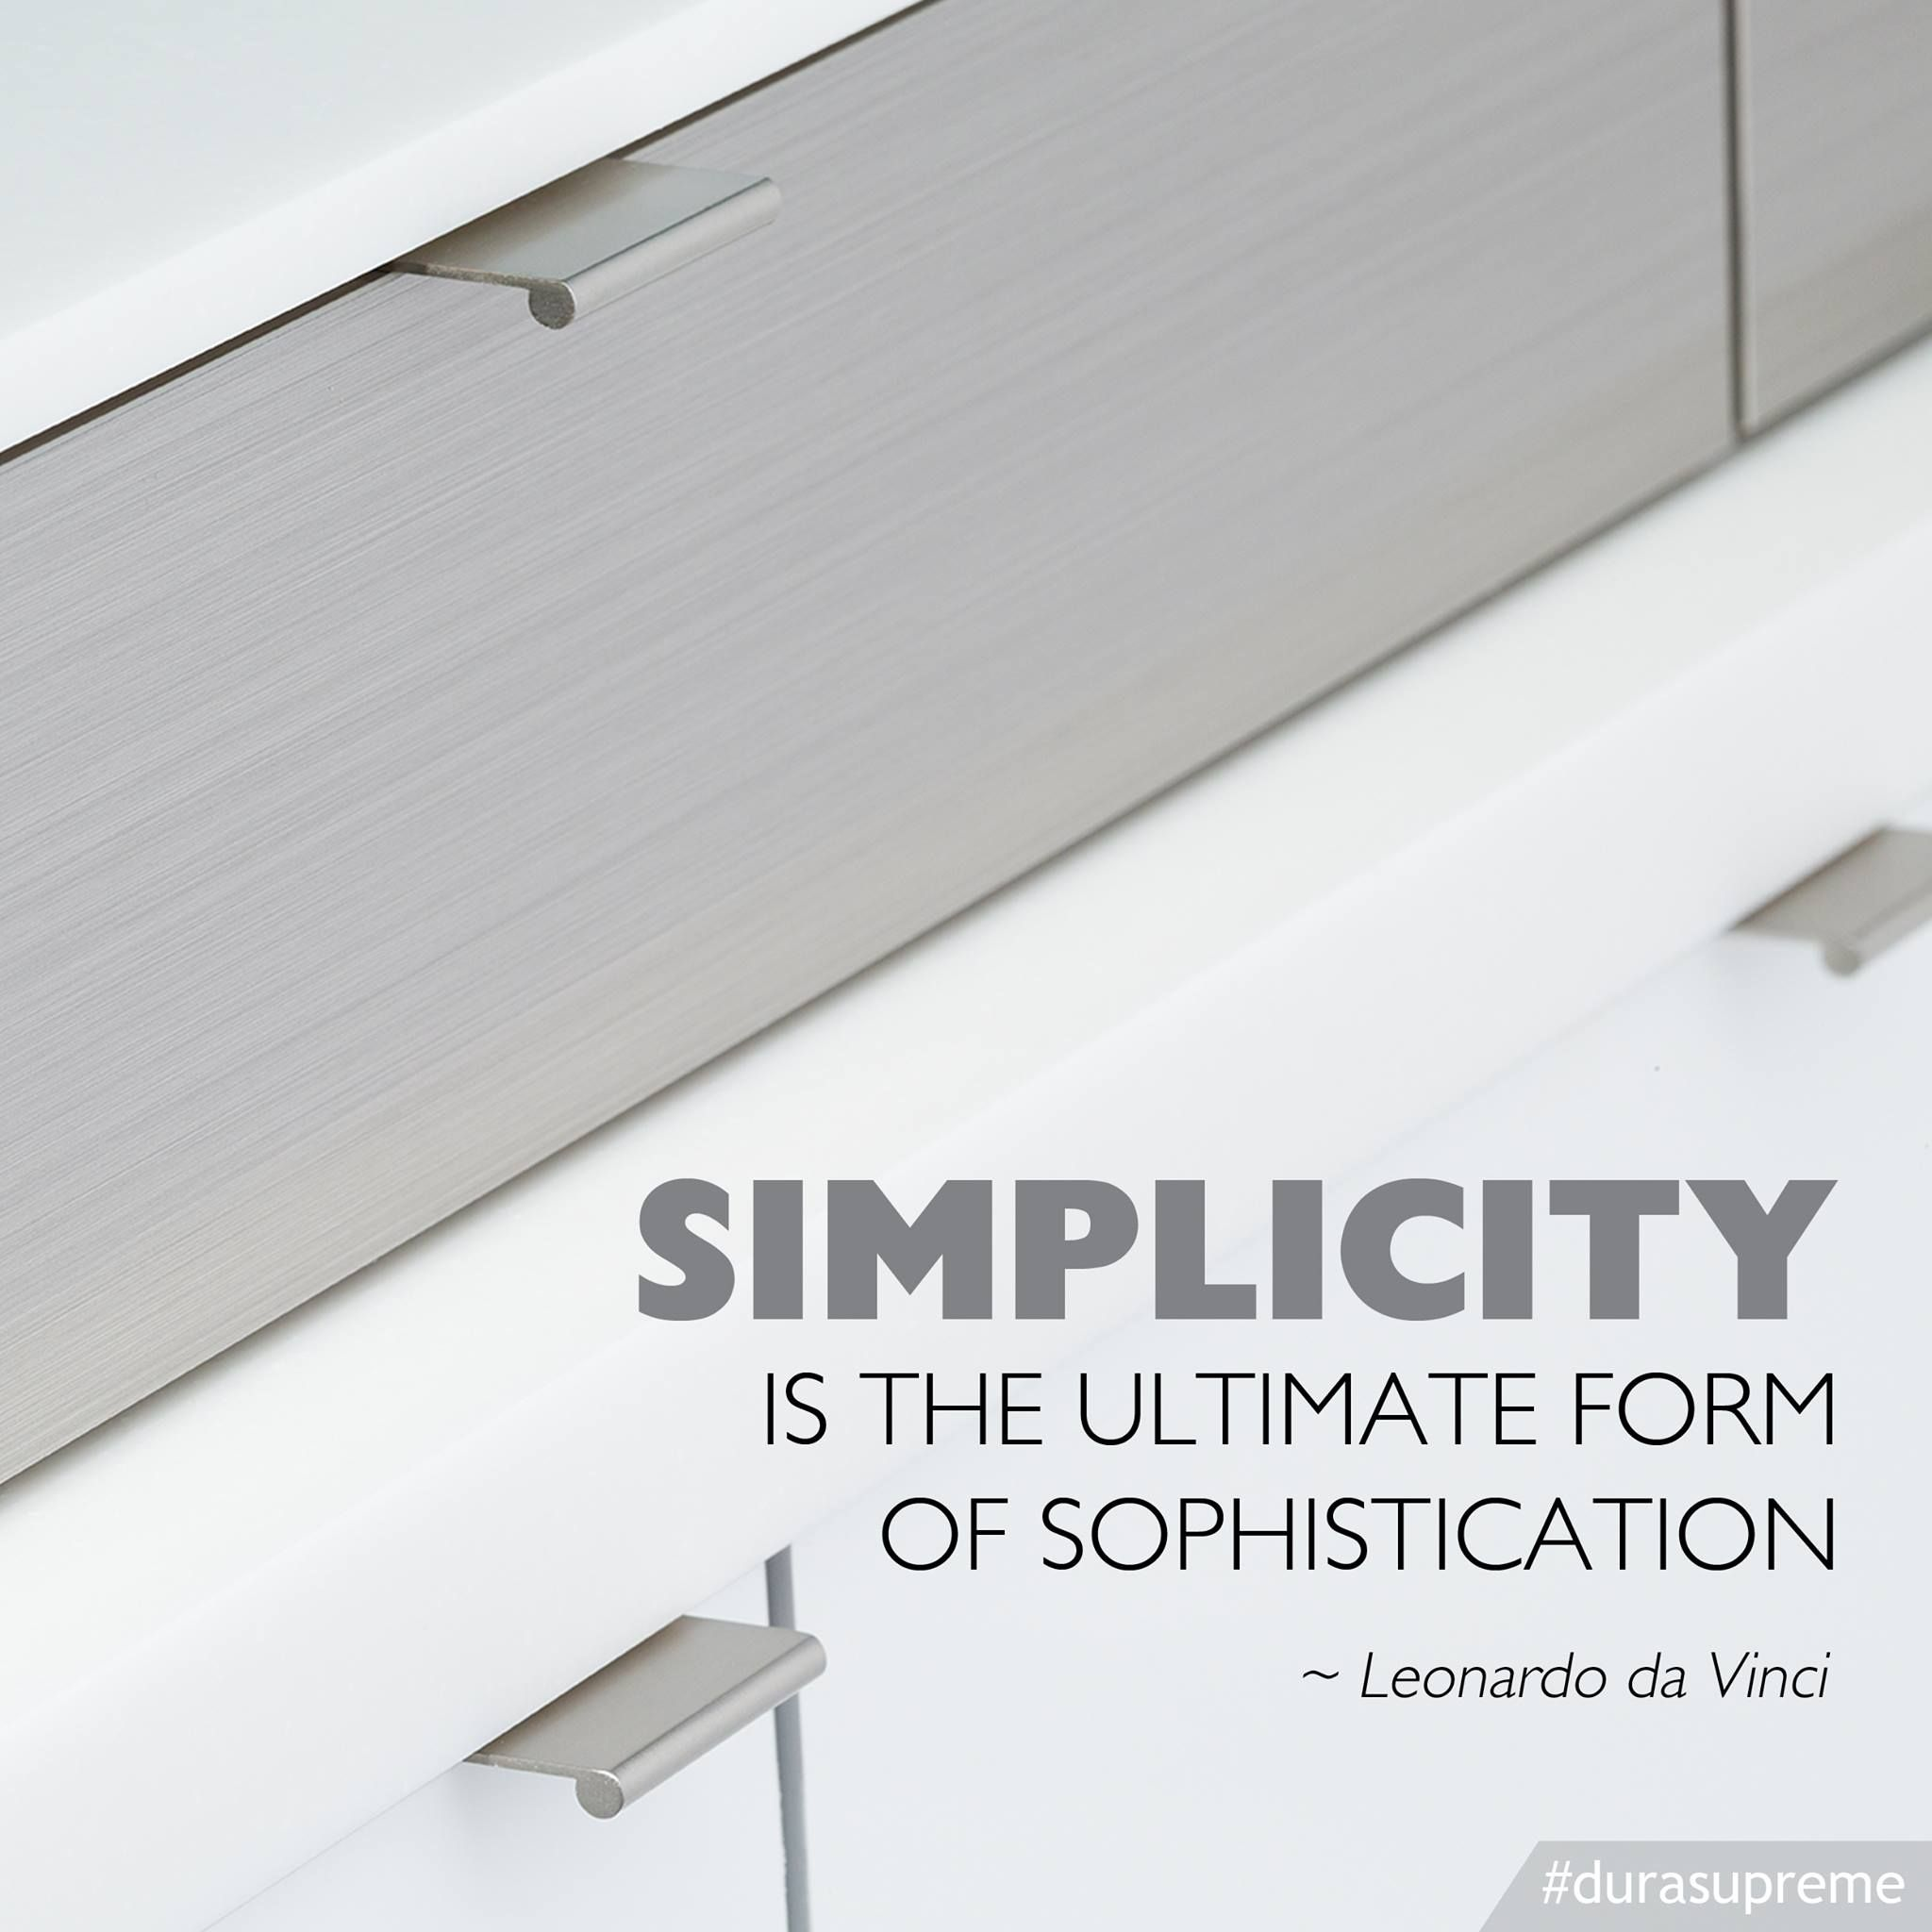 Simplicity Is The Ultimate Form Of Sophistication Leonardo Da Vinci Image Featuring Dura Kitchen And Bath Design Kitchen Cabinets In Bathroom Kitchen Design